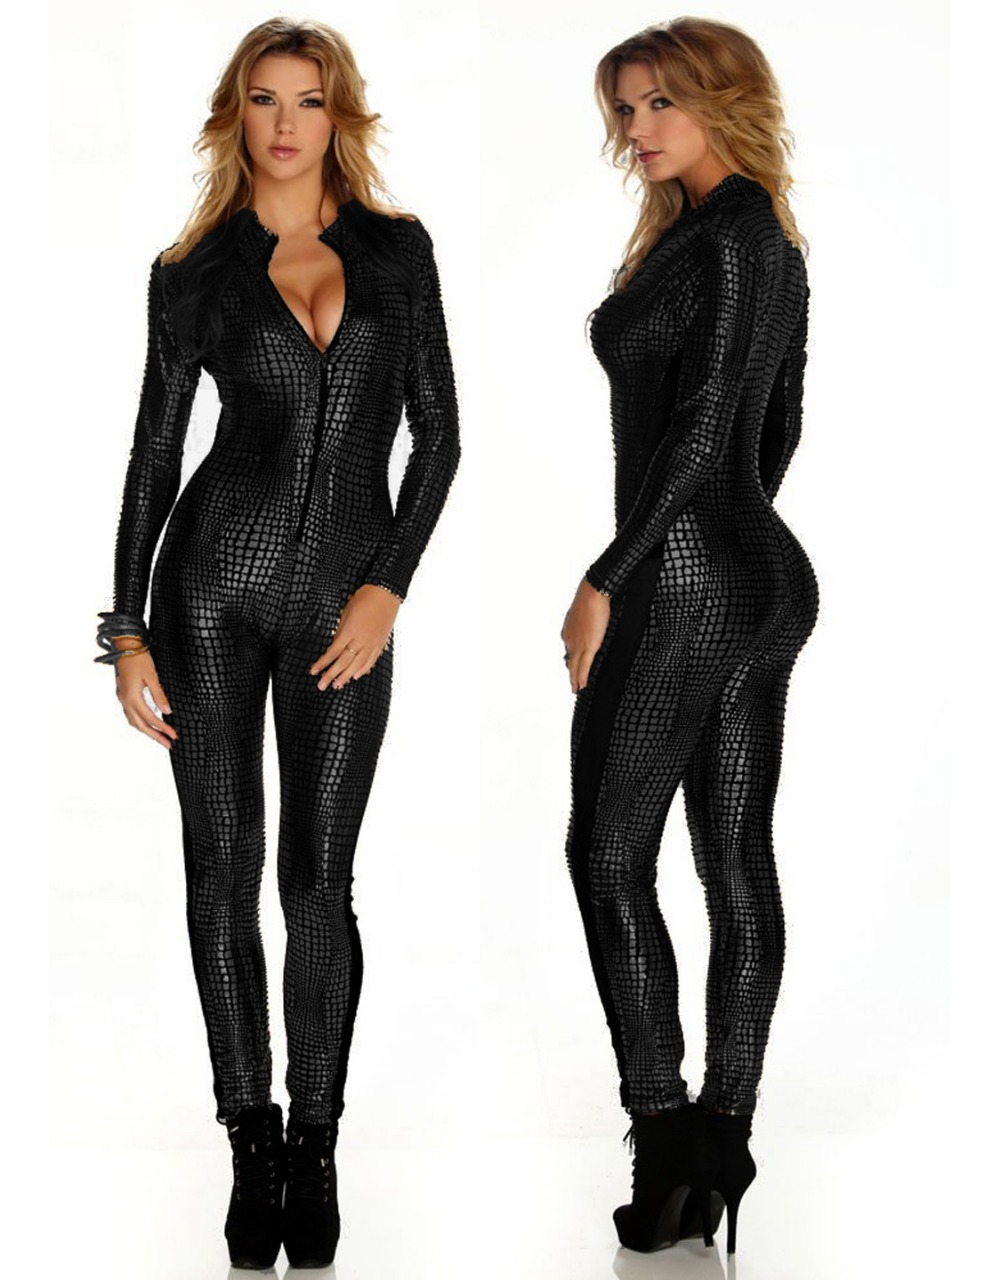 6f7baa3a7bc6 Get Quotations · Sexy Jumpsuit For Women Vinyl Leather Jumpsuit 2014 Hot  Sale New Black Sliver Gold Sexy Leather